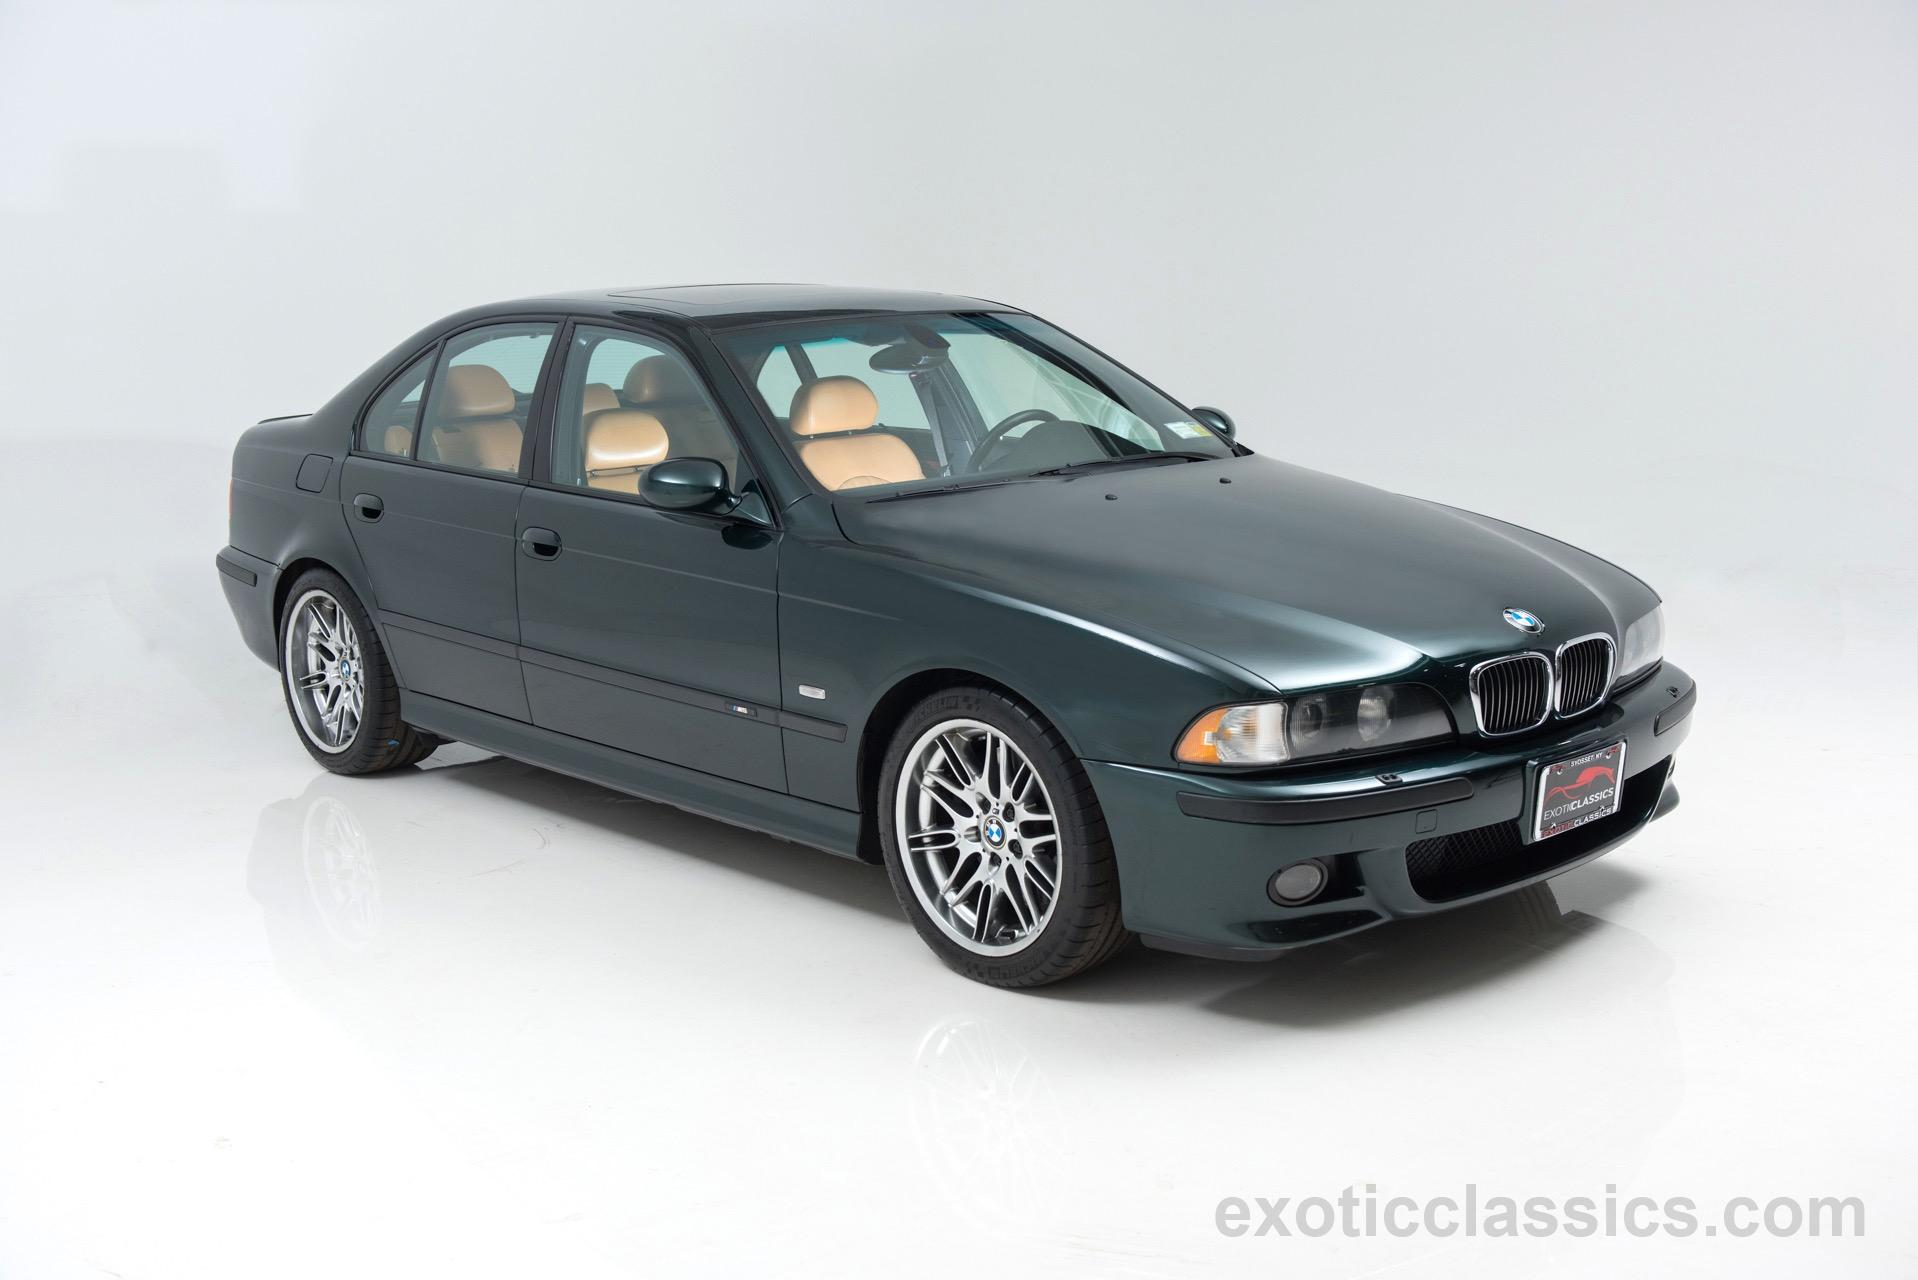 2000 Bmw M5 Exotic And Classic Car Dealership